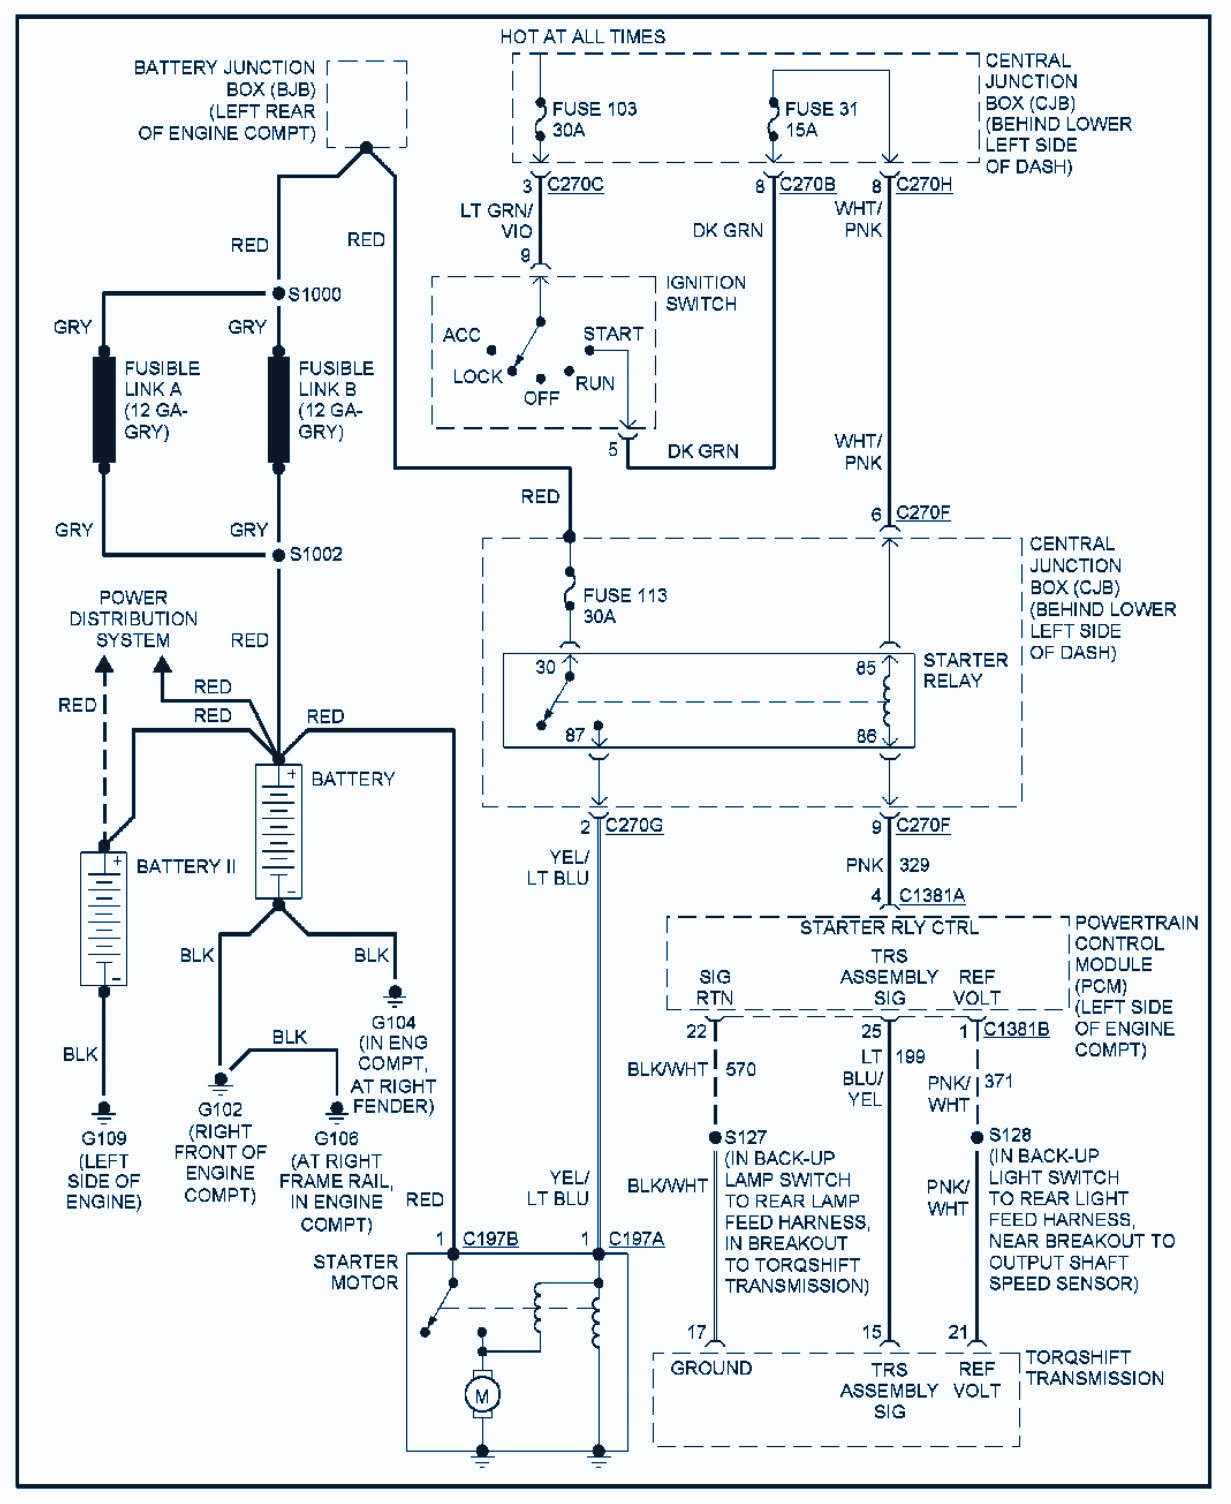 91 F350 Wiring Harness Wiring Diagram Will Be A Thing \u2022 2008 F450 Fuse  Diagram 2008 Ford F350 In Cab Fuse Diagram